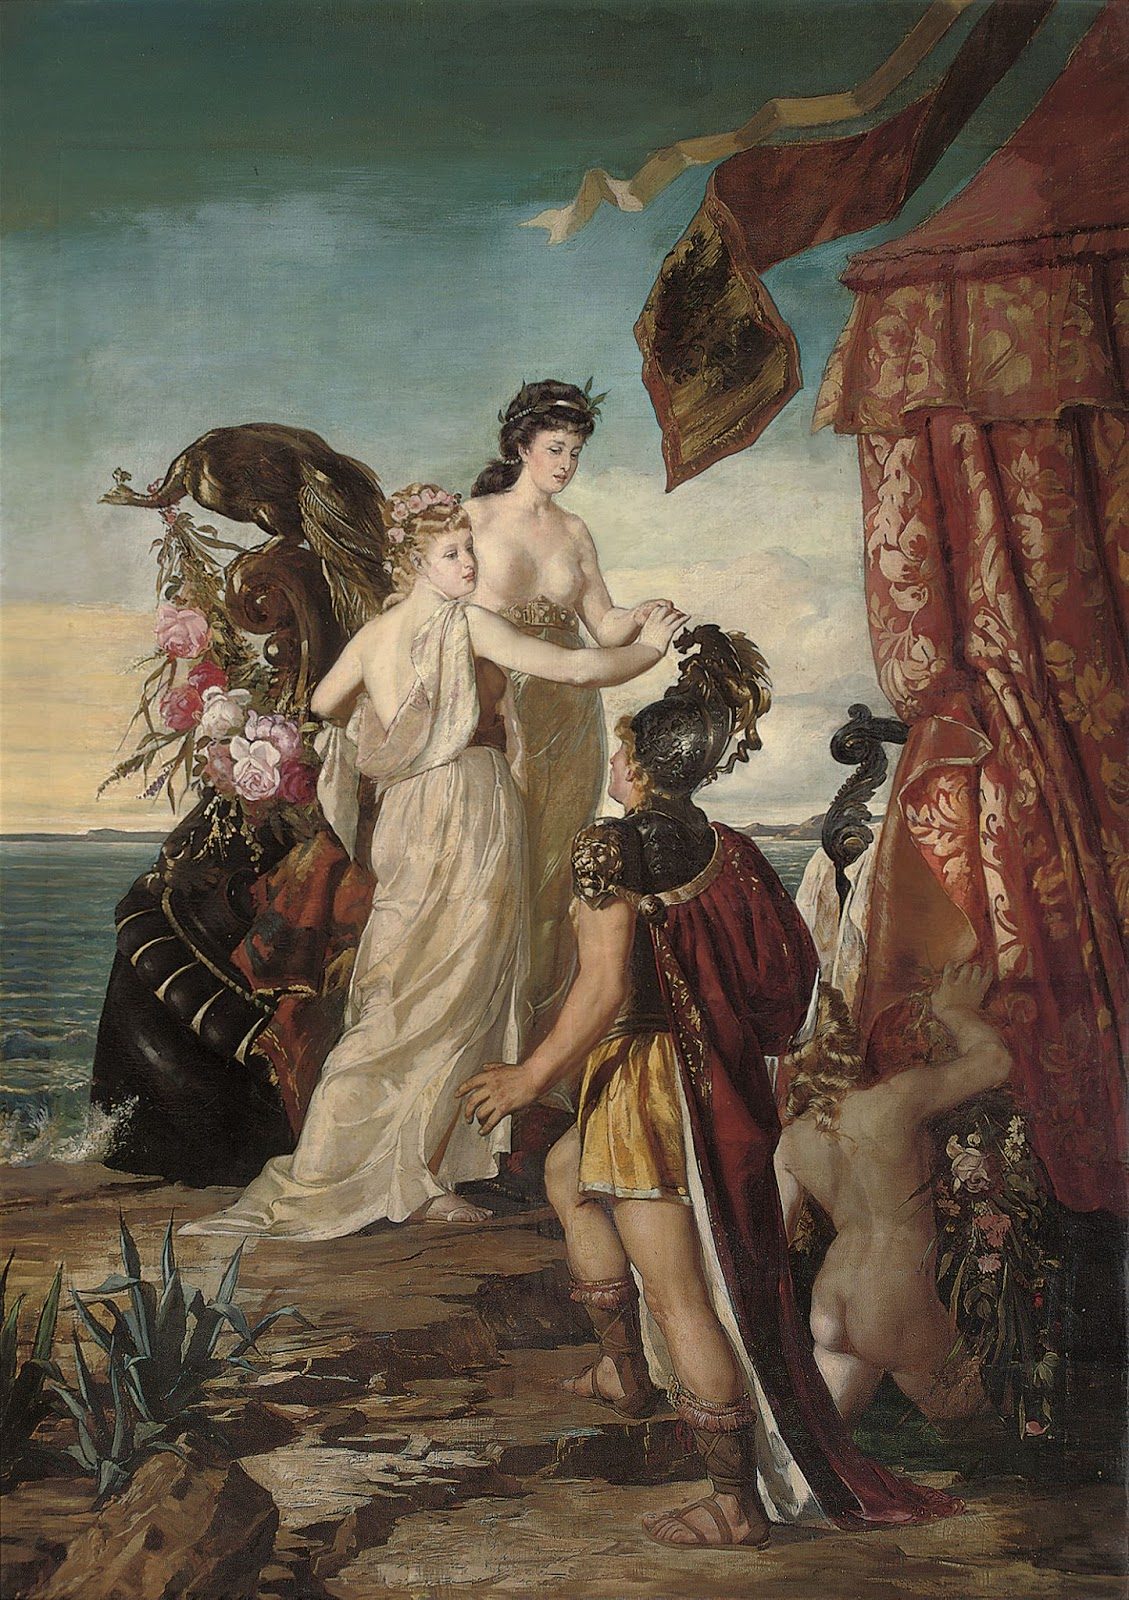 Tristan reaches Ireland where he meets Isolde for the first time. Mythical love stories: Tristan and Isolde, unknown artist of German School, 19th century, private collection